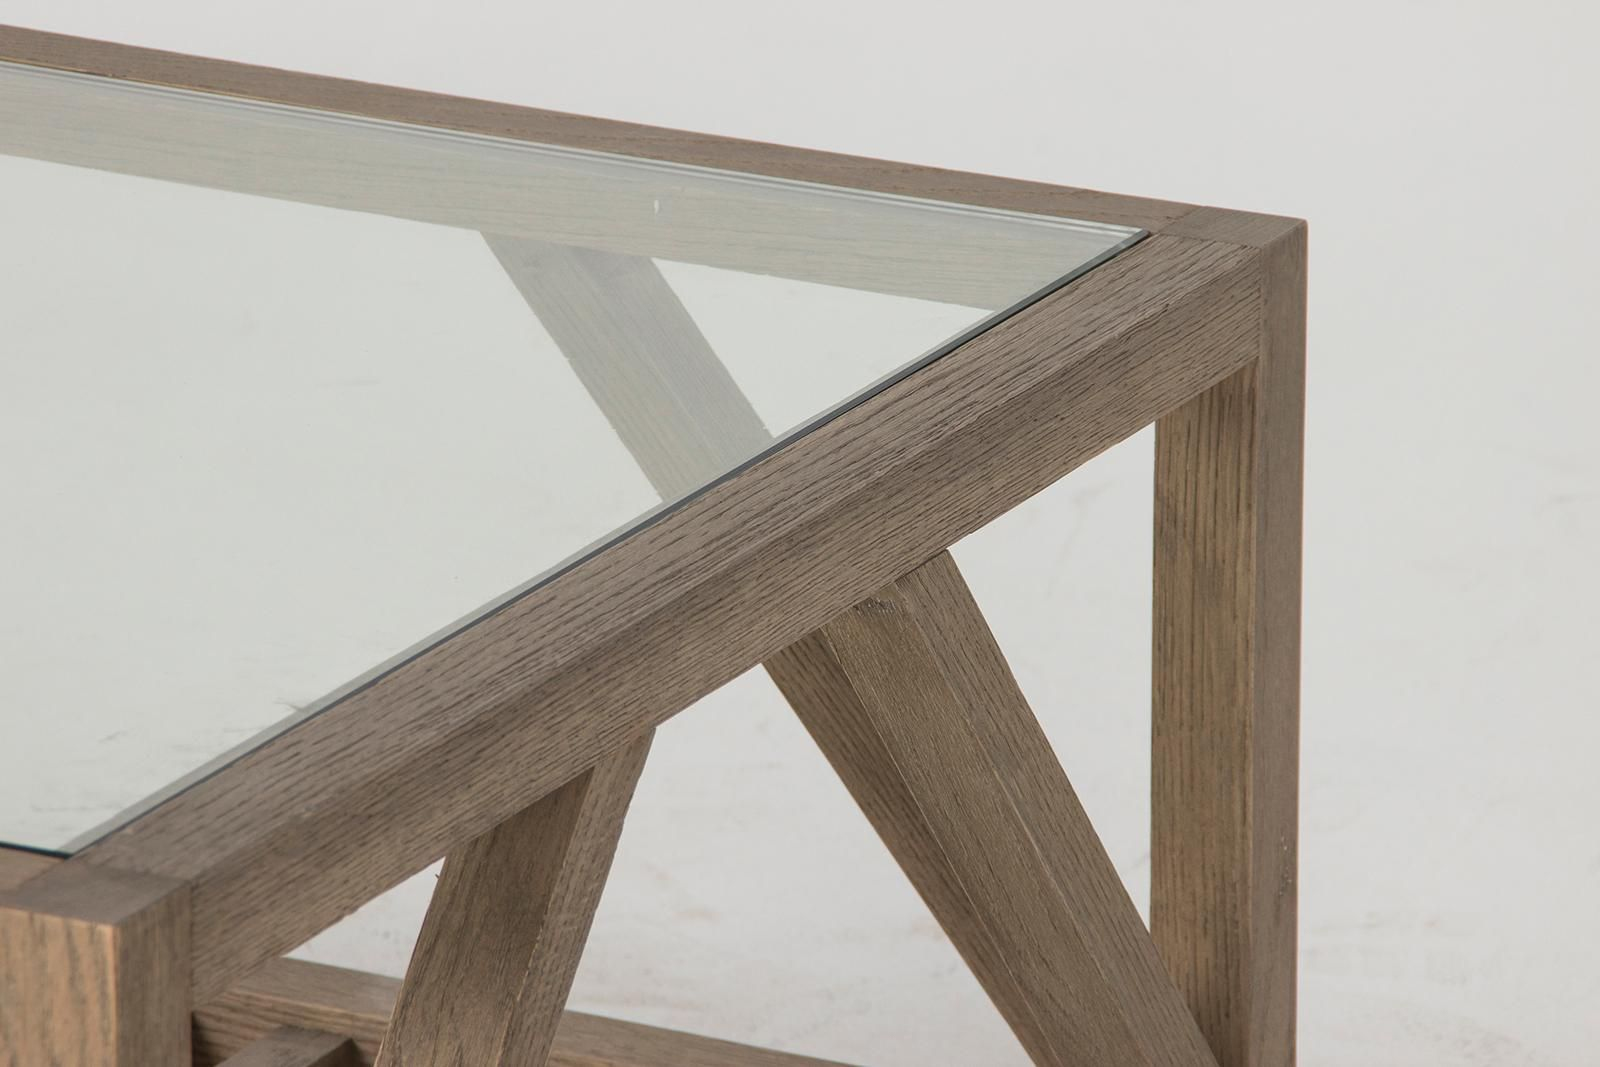 Table Basse Amazon Luxe Images Amazon Flamant Carpenter Glass Coffee Table Weathered Natural